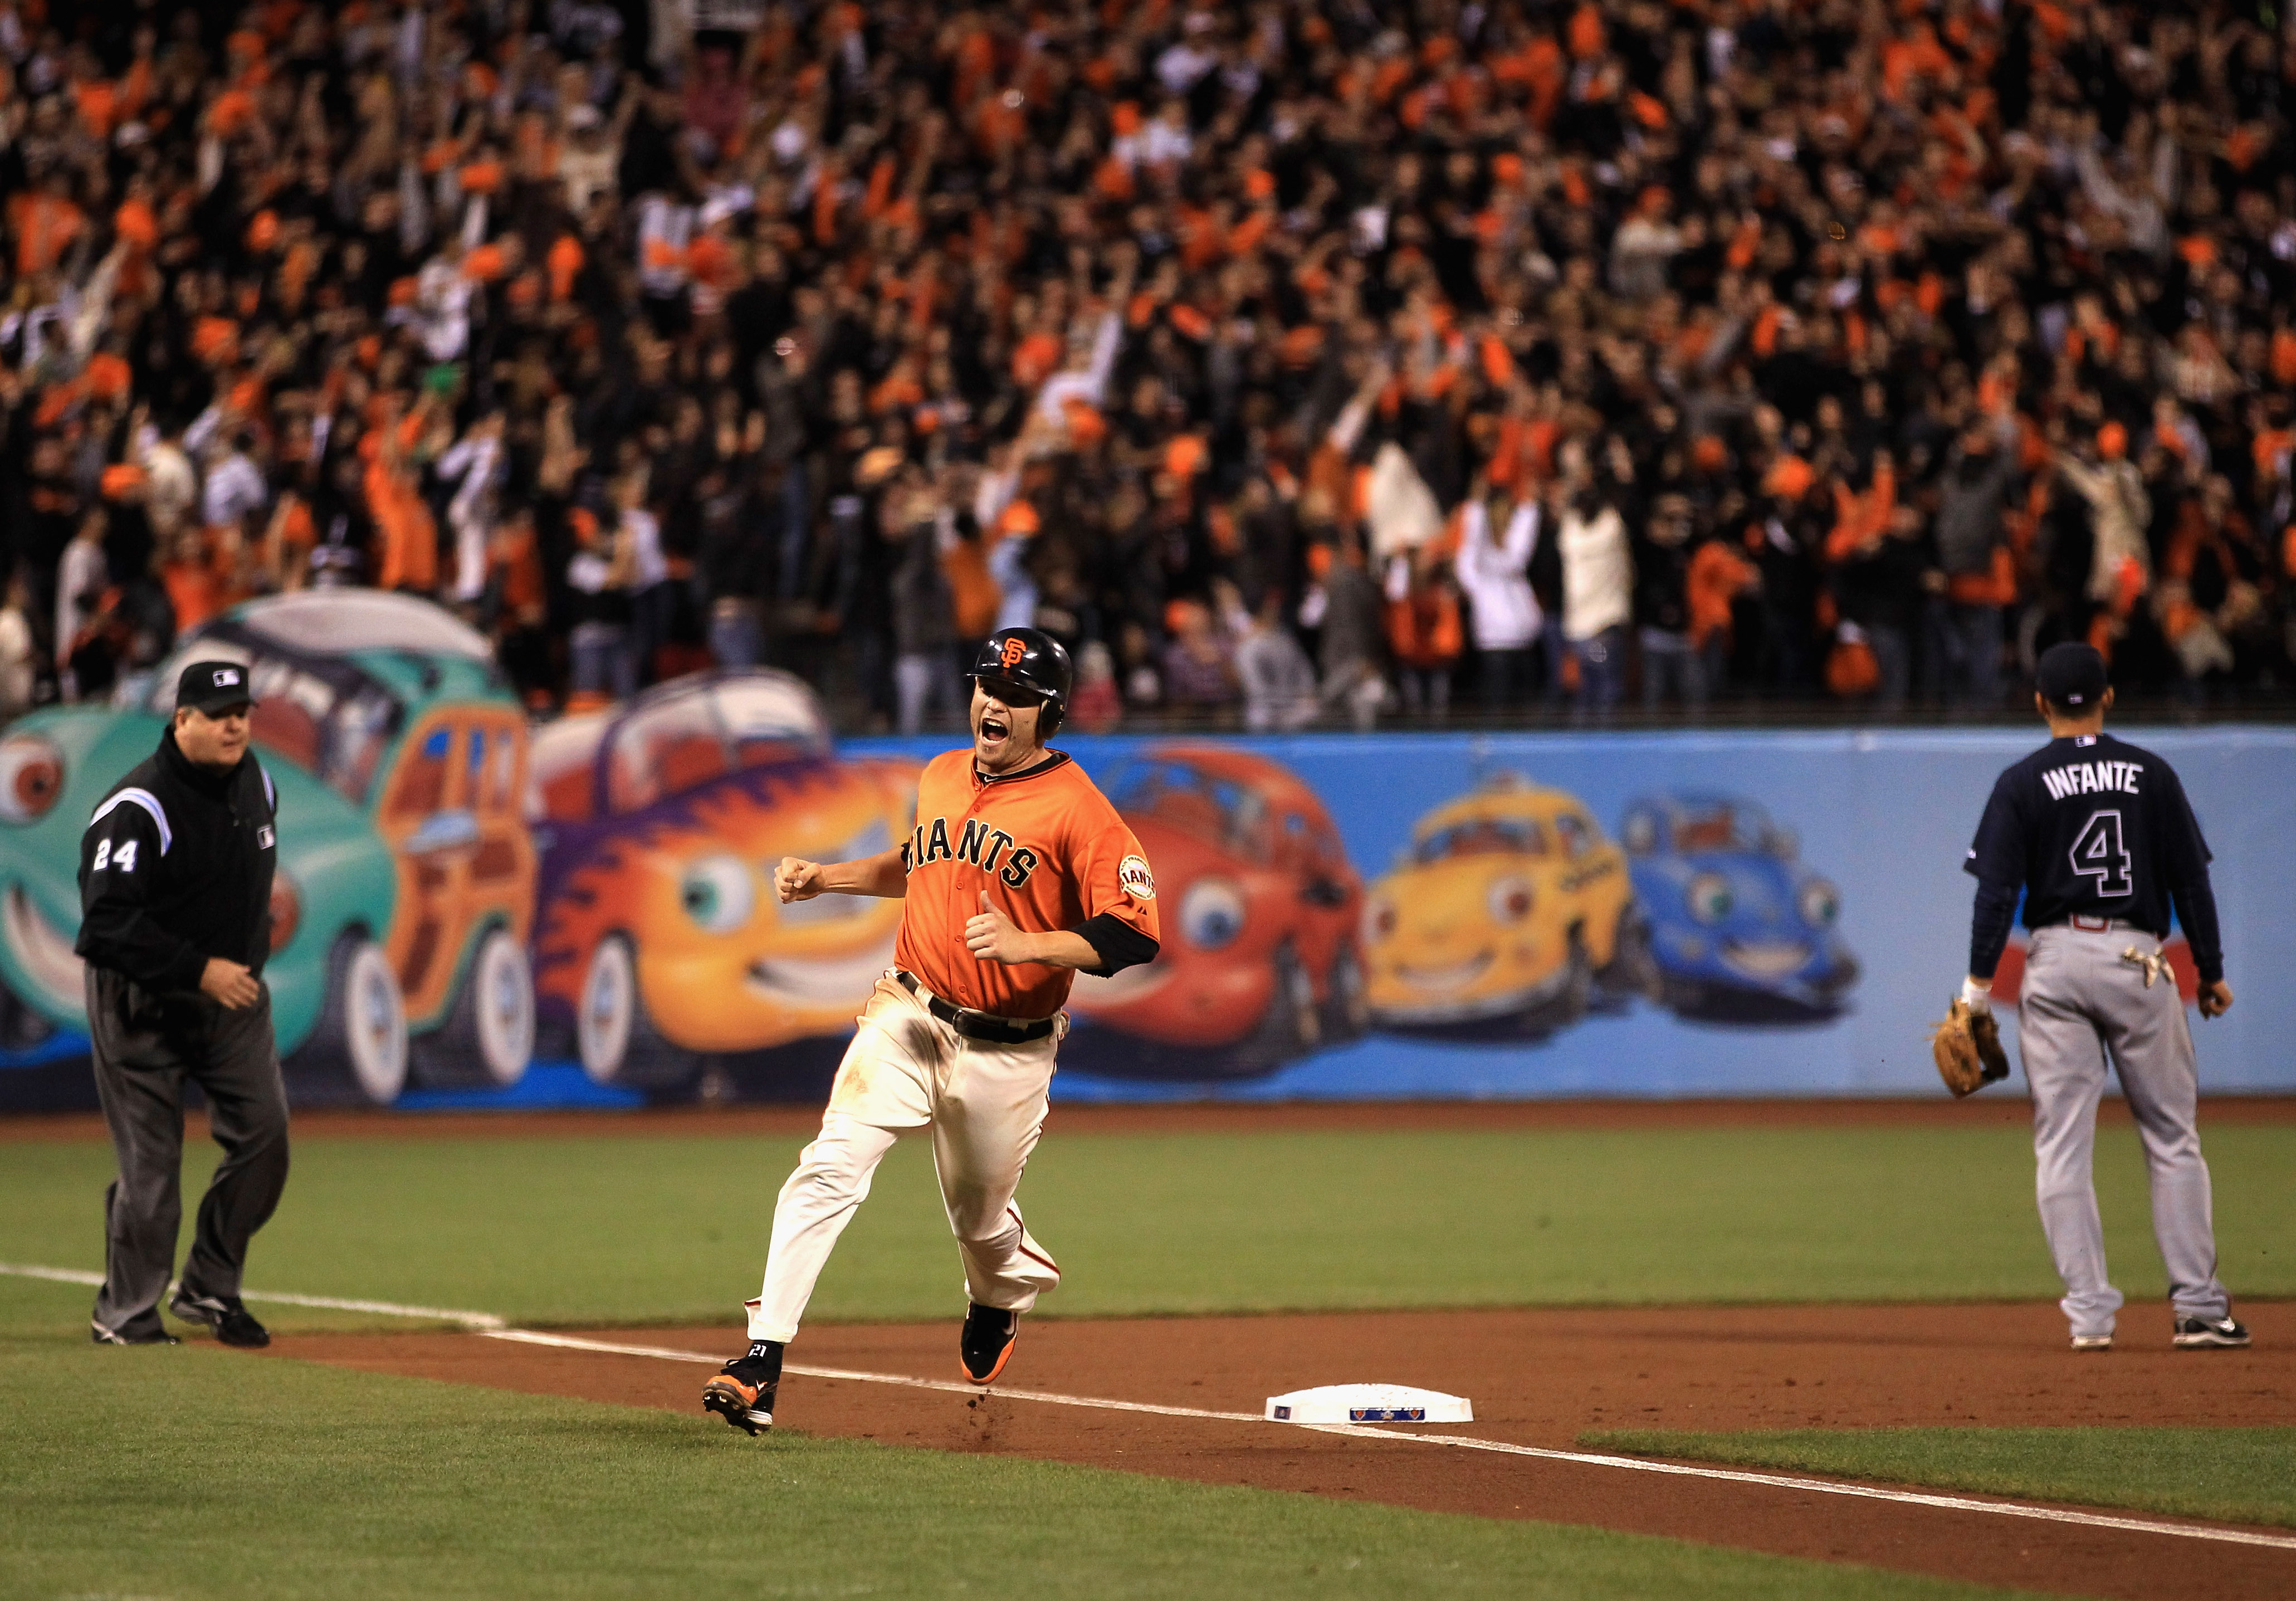 SAN FRANCISCO - OCTOBER 08:  Freddy Sanchez #21 of the San Francisco Giants reacts as he rounds third base on a home run by Pat Burrell #9 in the first inning against the Atlanta Braves in game 2 of the NLDS at AT&T Park on October 8, 2010 in San Francisc